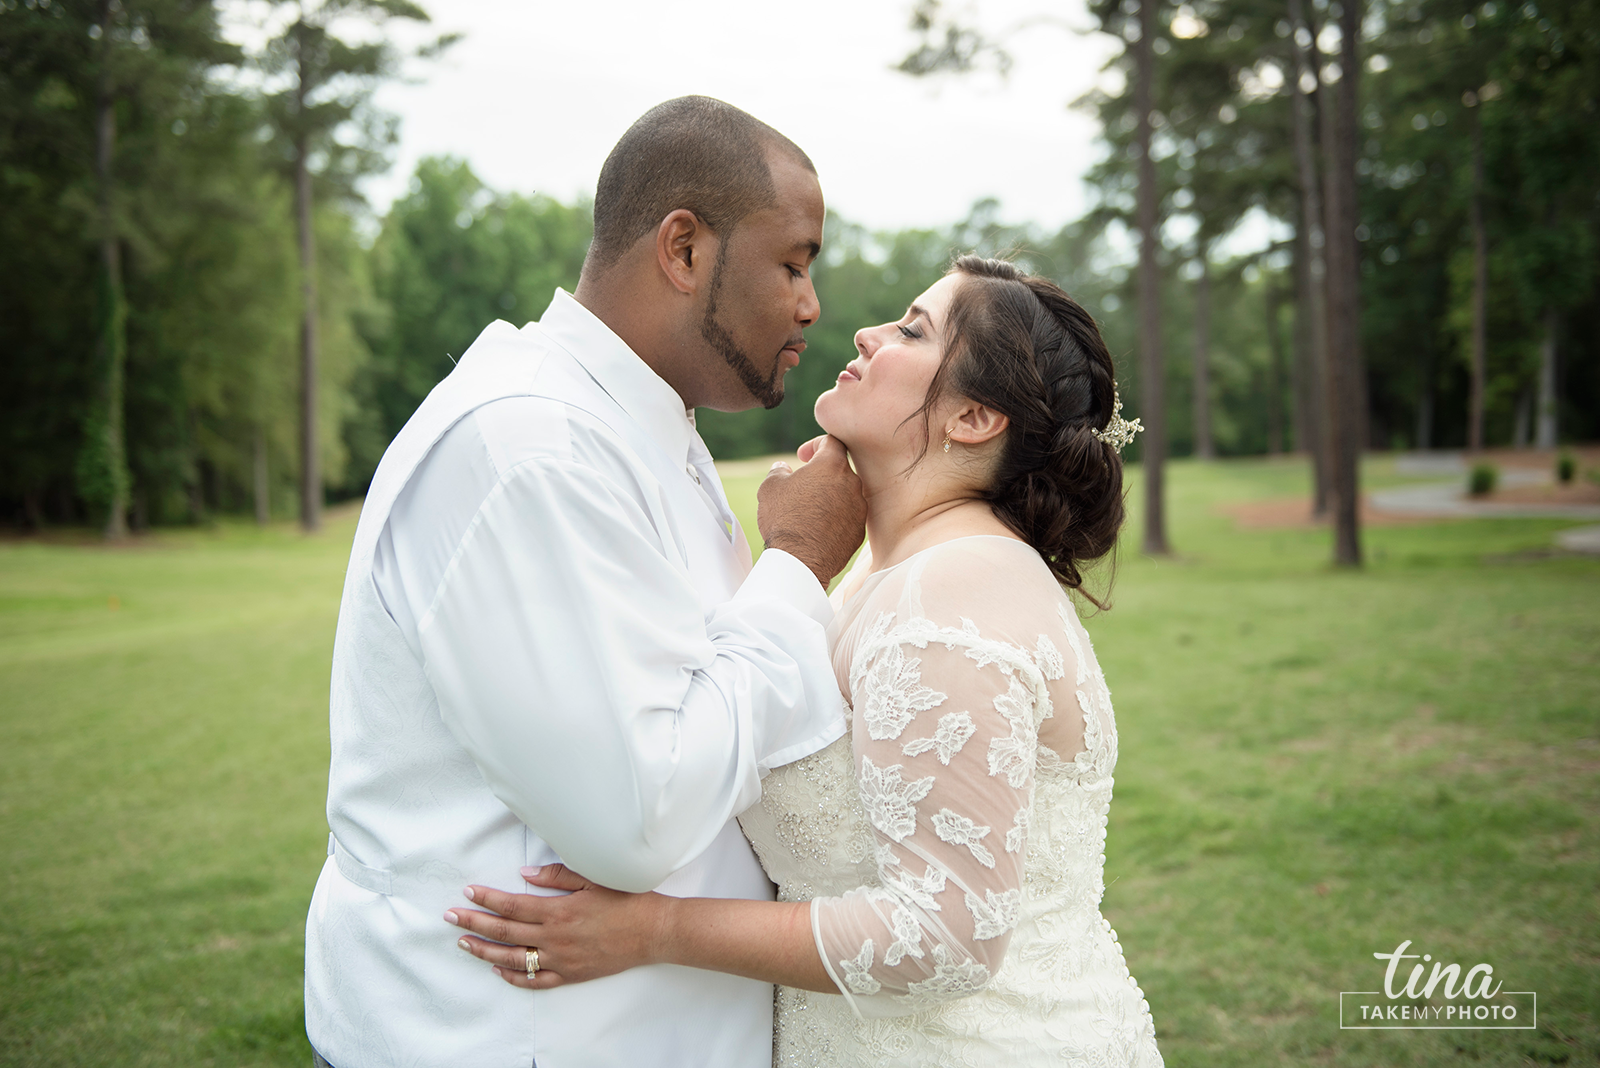 wedding-photographer-bride-groom-portrait-summer-brandermill-country-club-virginia-golf-course-rain2